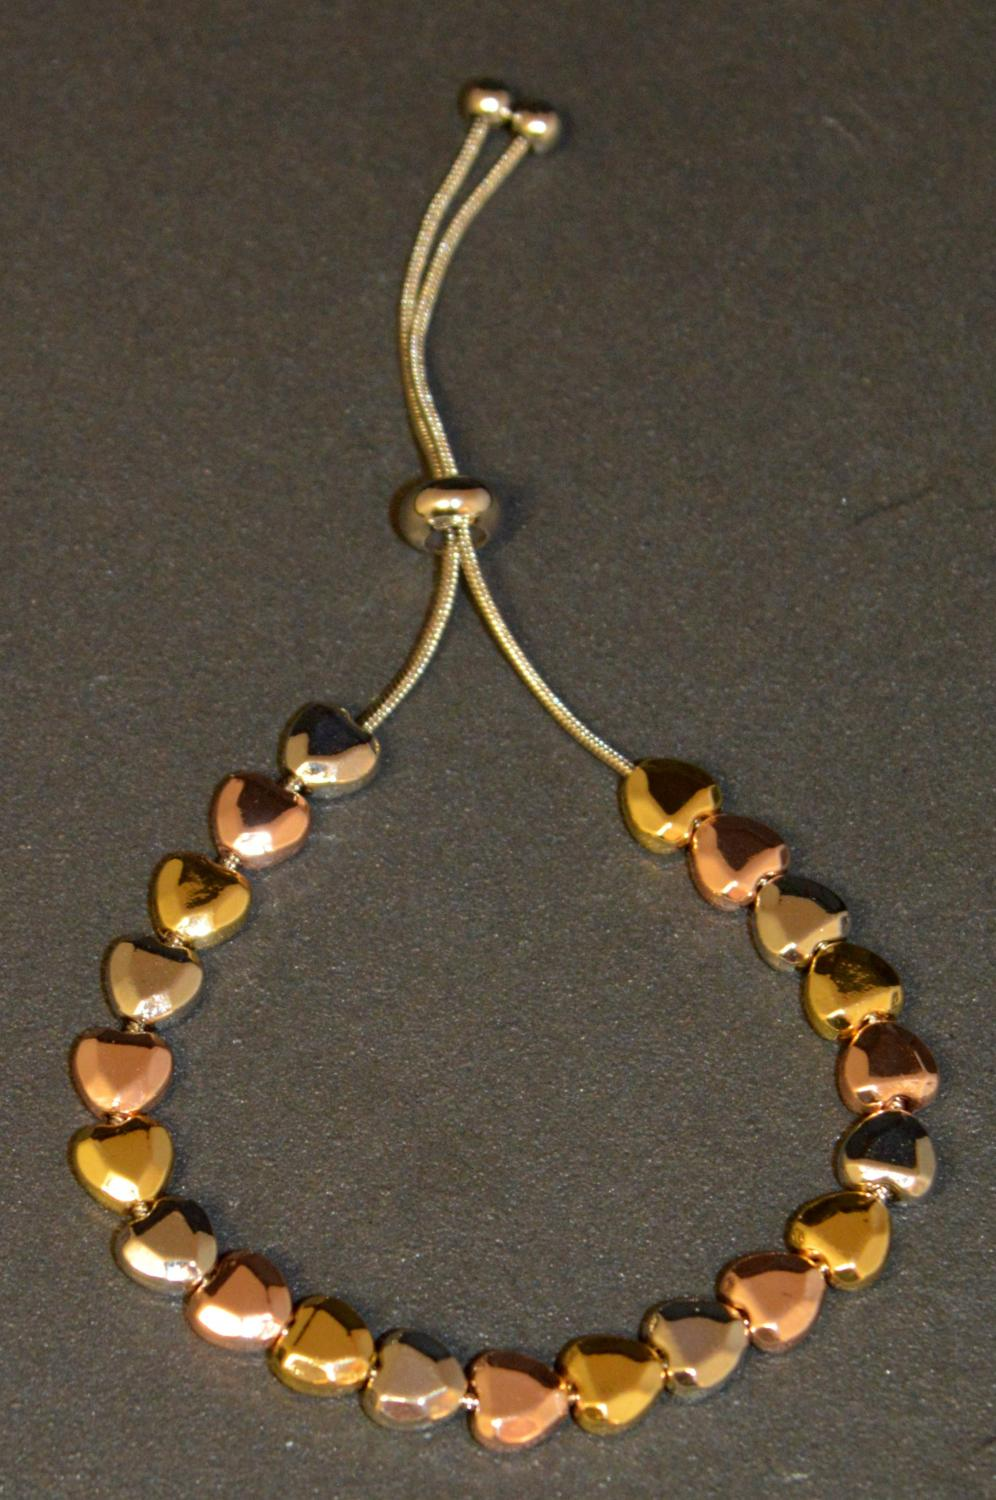 Mini Hammered Effect Heart Metal Beads on a Adjustable Bracelet